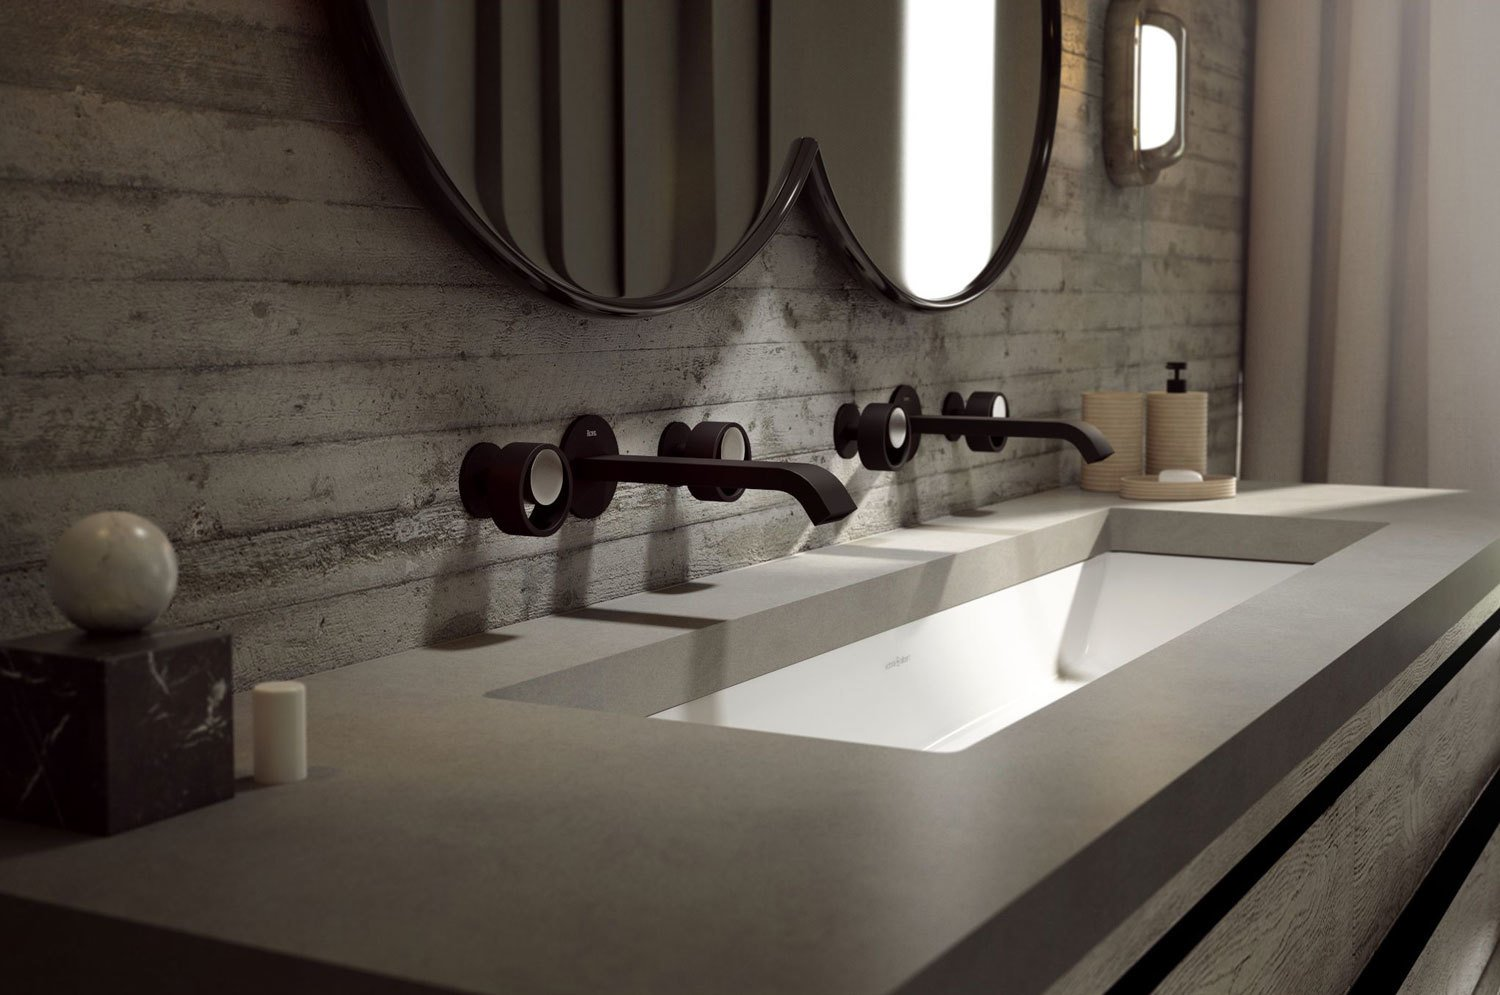 Trend Report: 10 High-Tech, High-Design Bathroom Products for the New Decade